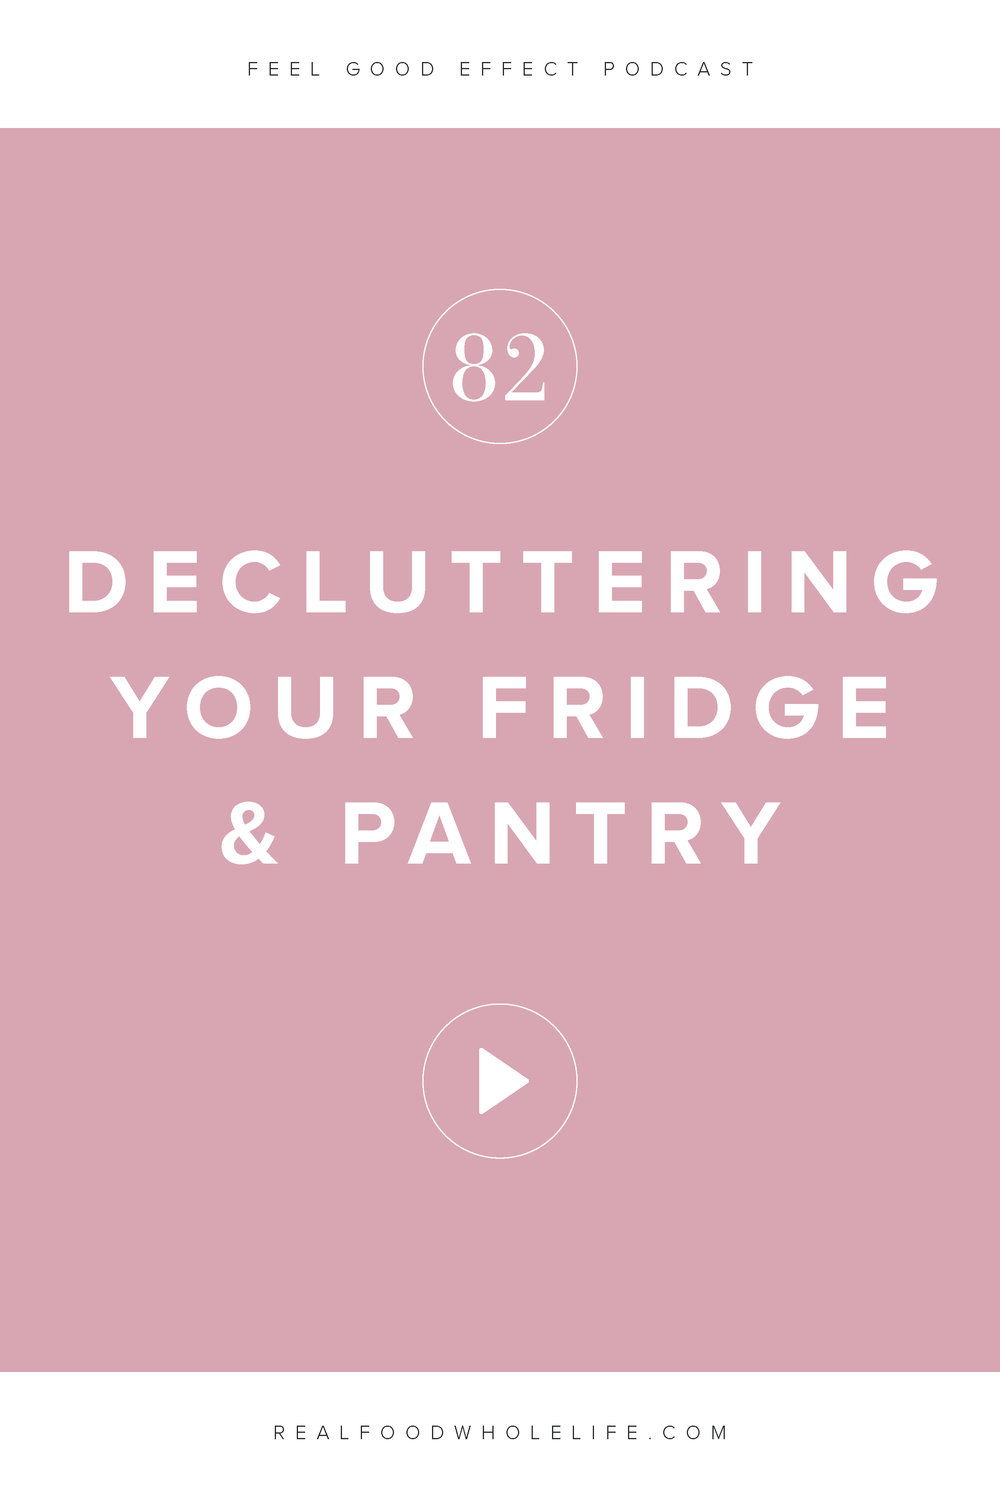 Declutter your pantry and fridge for streamlined meal planning and easy, healthy, real food cooking. An episode of the Feel Good Effect podcast. #realfoodwholelife #feelgoodeffect #podcast #wellnesspodcast #declutter #minimalism #mealprep #mealplanning #wellness #gentle #gentleisthenewperfect #cleanliving #organize